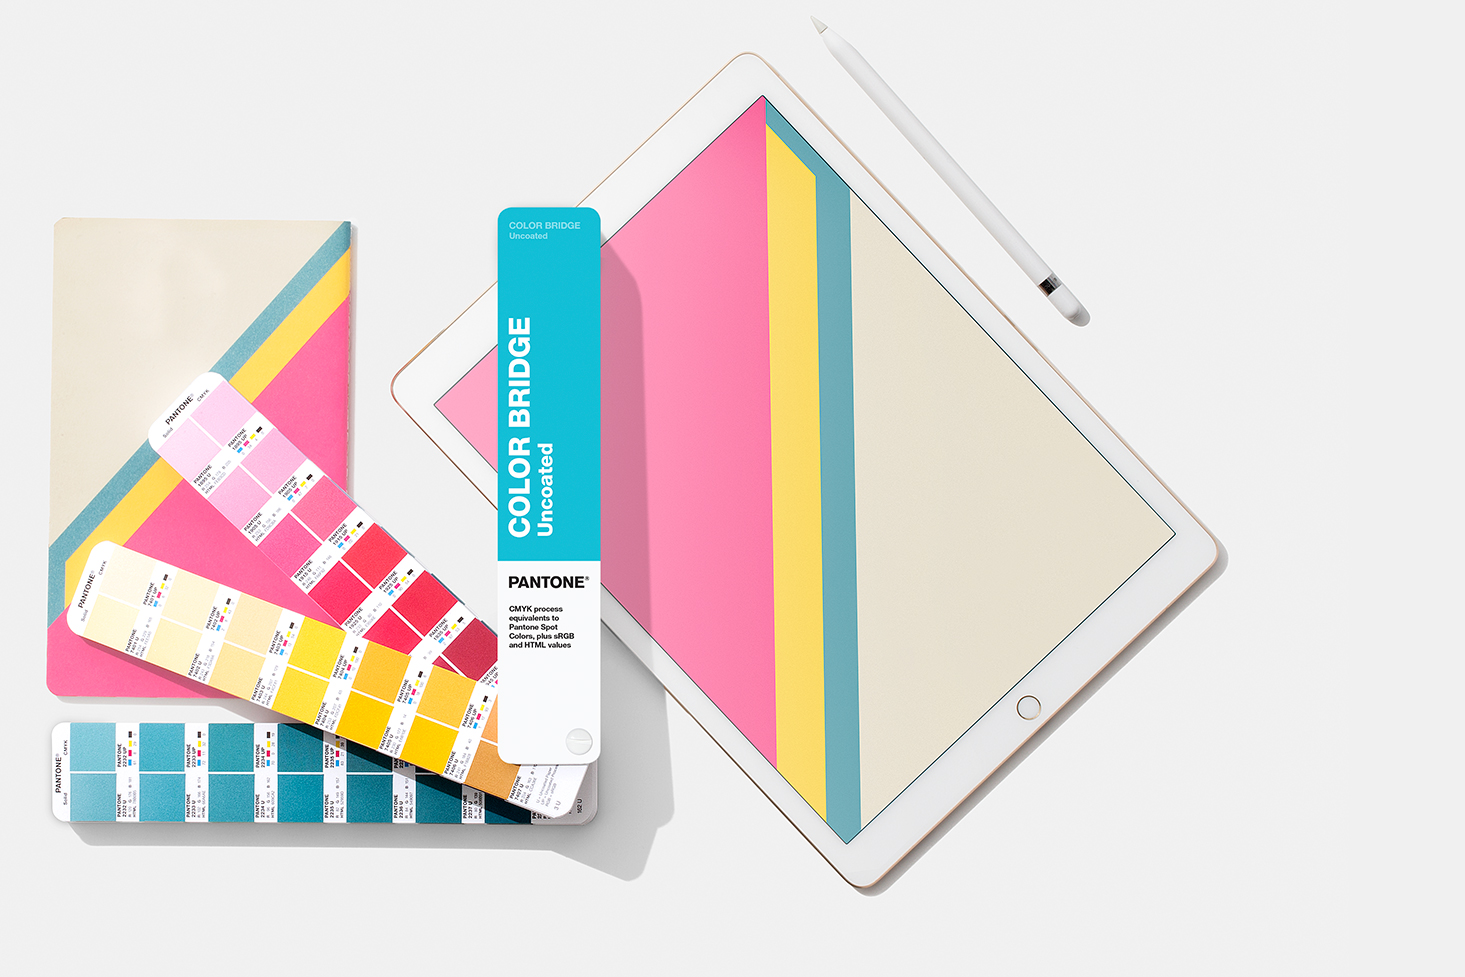 Pantone Color Bridge Guide | Uncoated